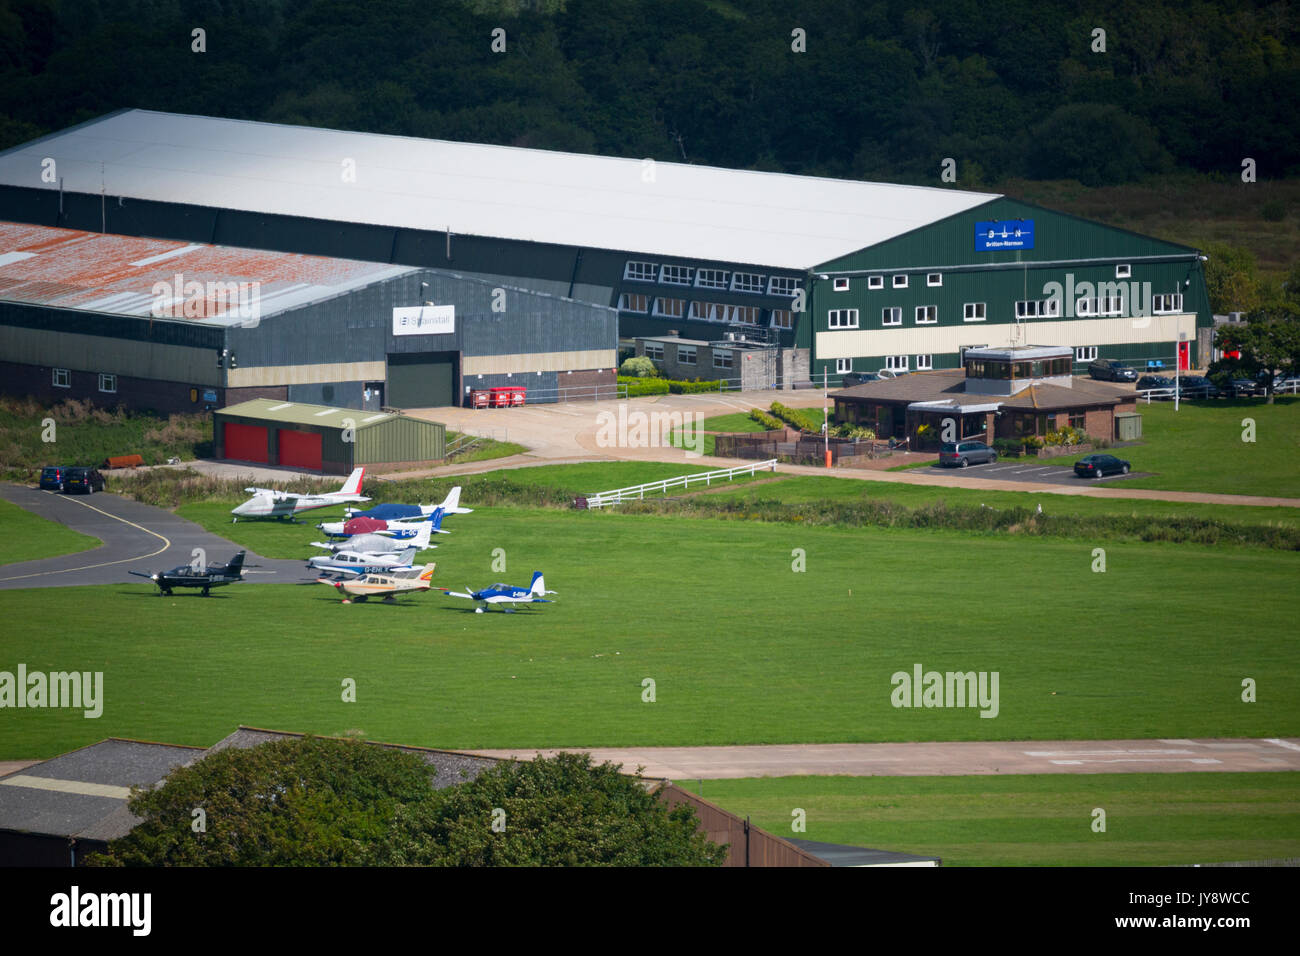 Brittan, Norman, Ltd, Aeroplane, Manufacturer, Bembridge, Airport, Isle of Wight, England, UK, - Stock Image